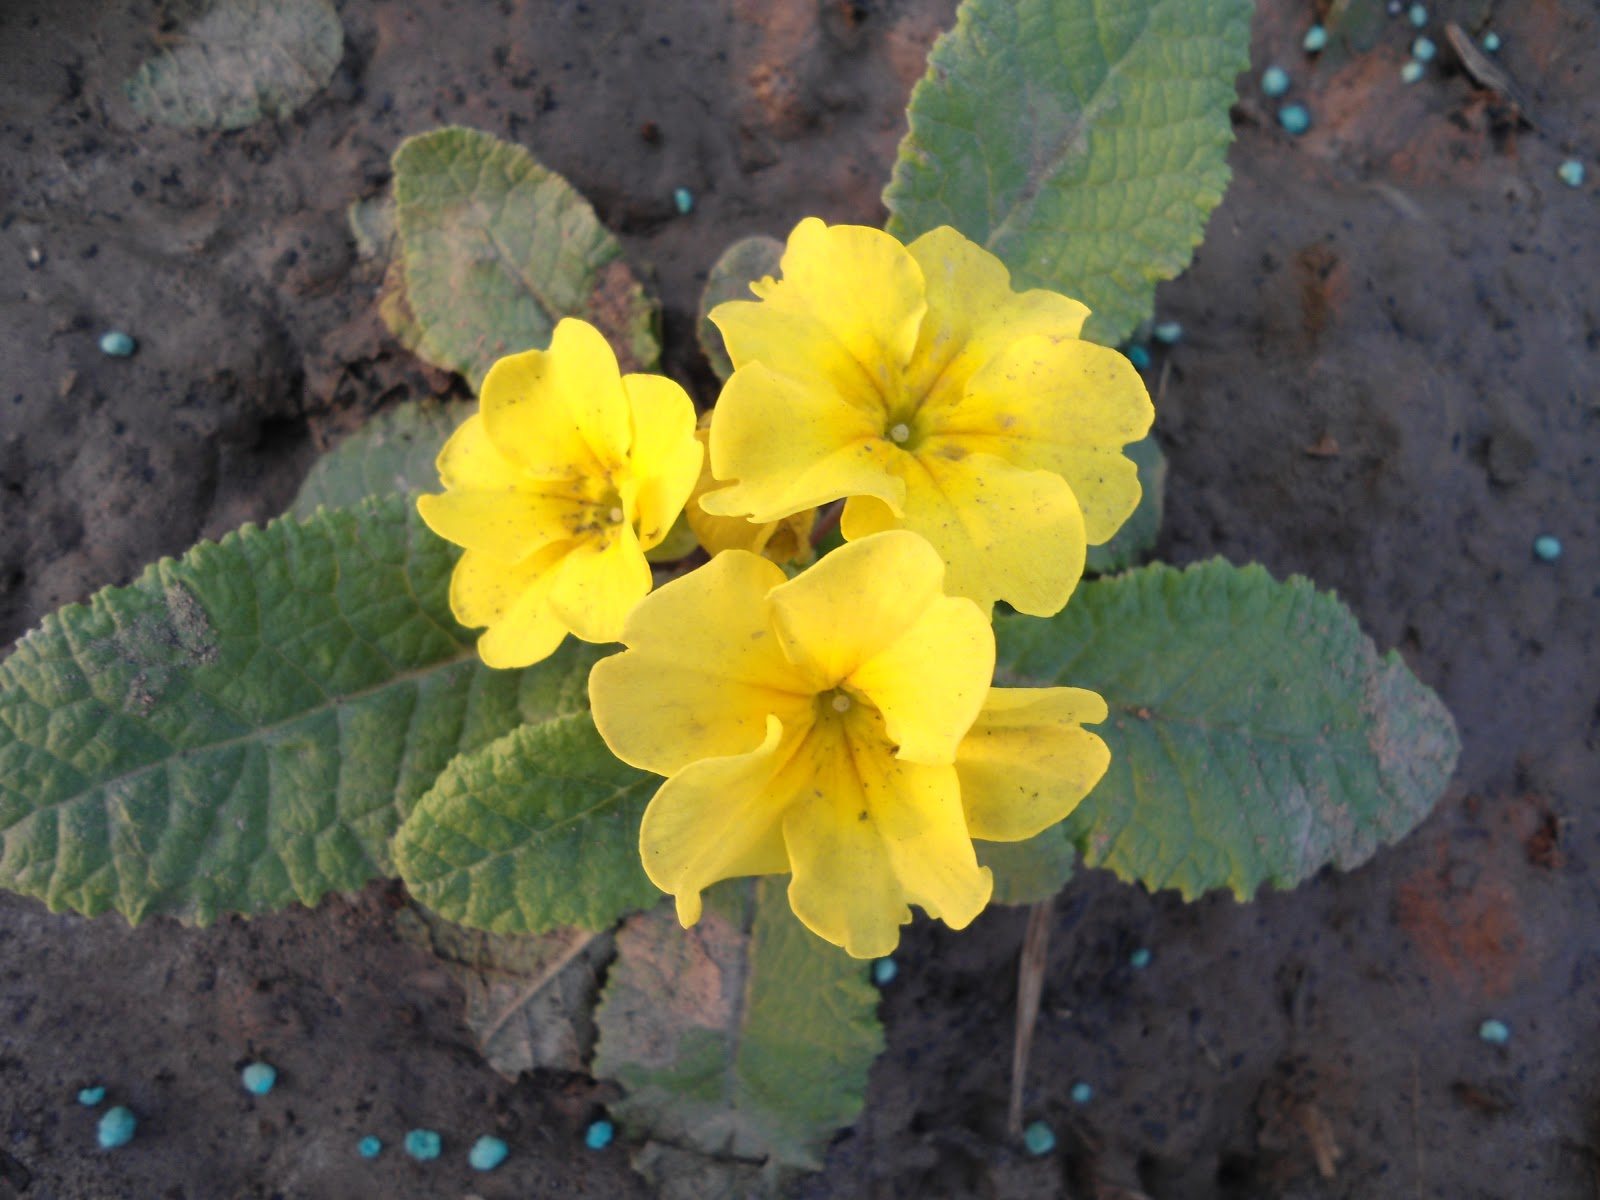 Flora hort all about horticulture floriculture and landscaping what izmirmasajfo